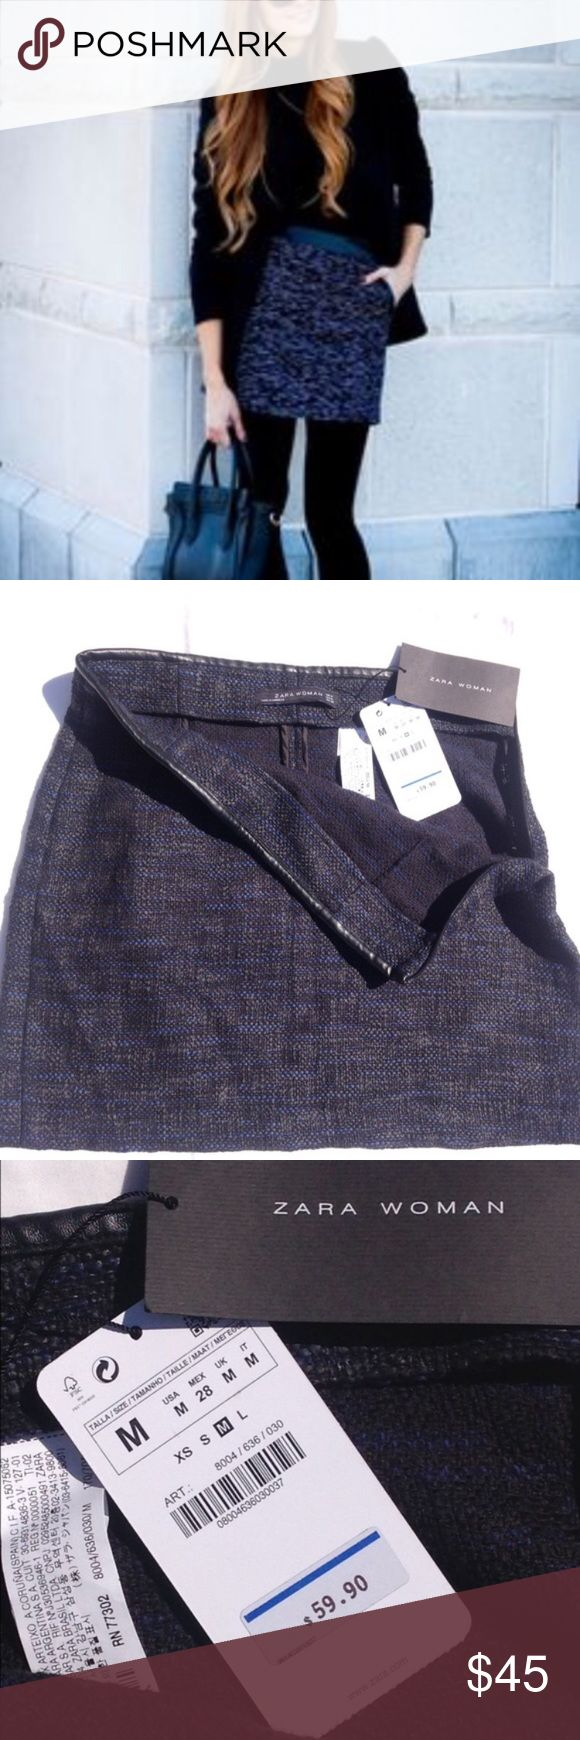 NWT Zara tweed mini skirt Black and blue woven fabric skirt. Leather trim waist. Side zipper. NWT. Sold out at Zara. Not first picture is slightly different model skirt - this listing doesn't not have pockets. Zara Skirts Mini